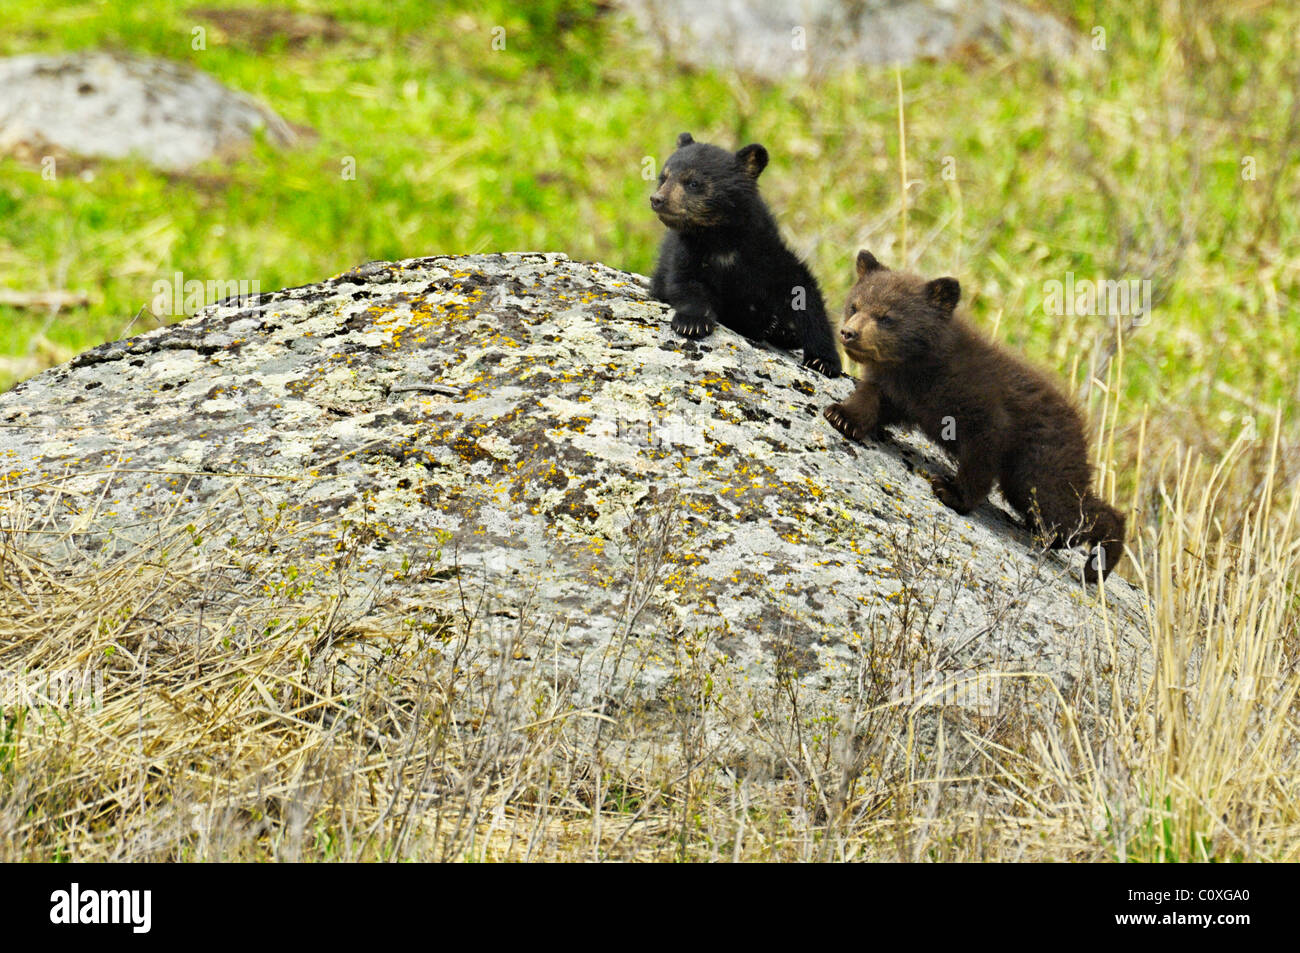 Cinnamon and black bear cubs on boulder - Stock Image